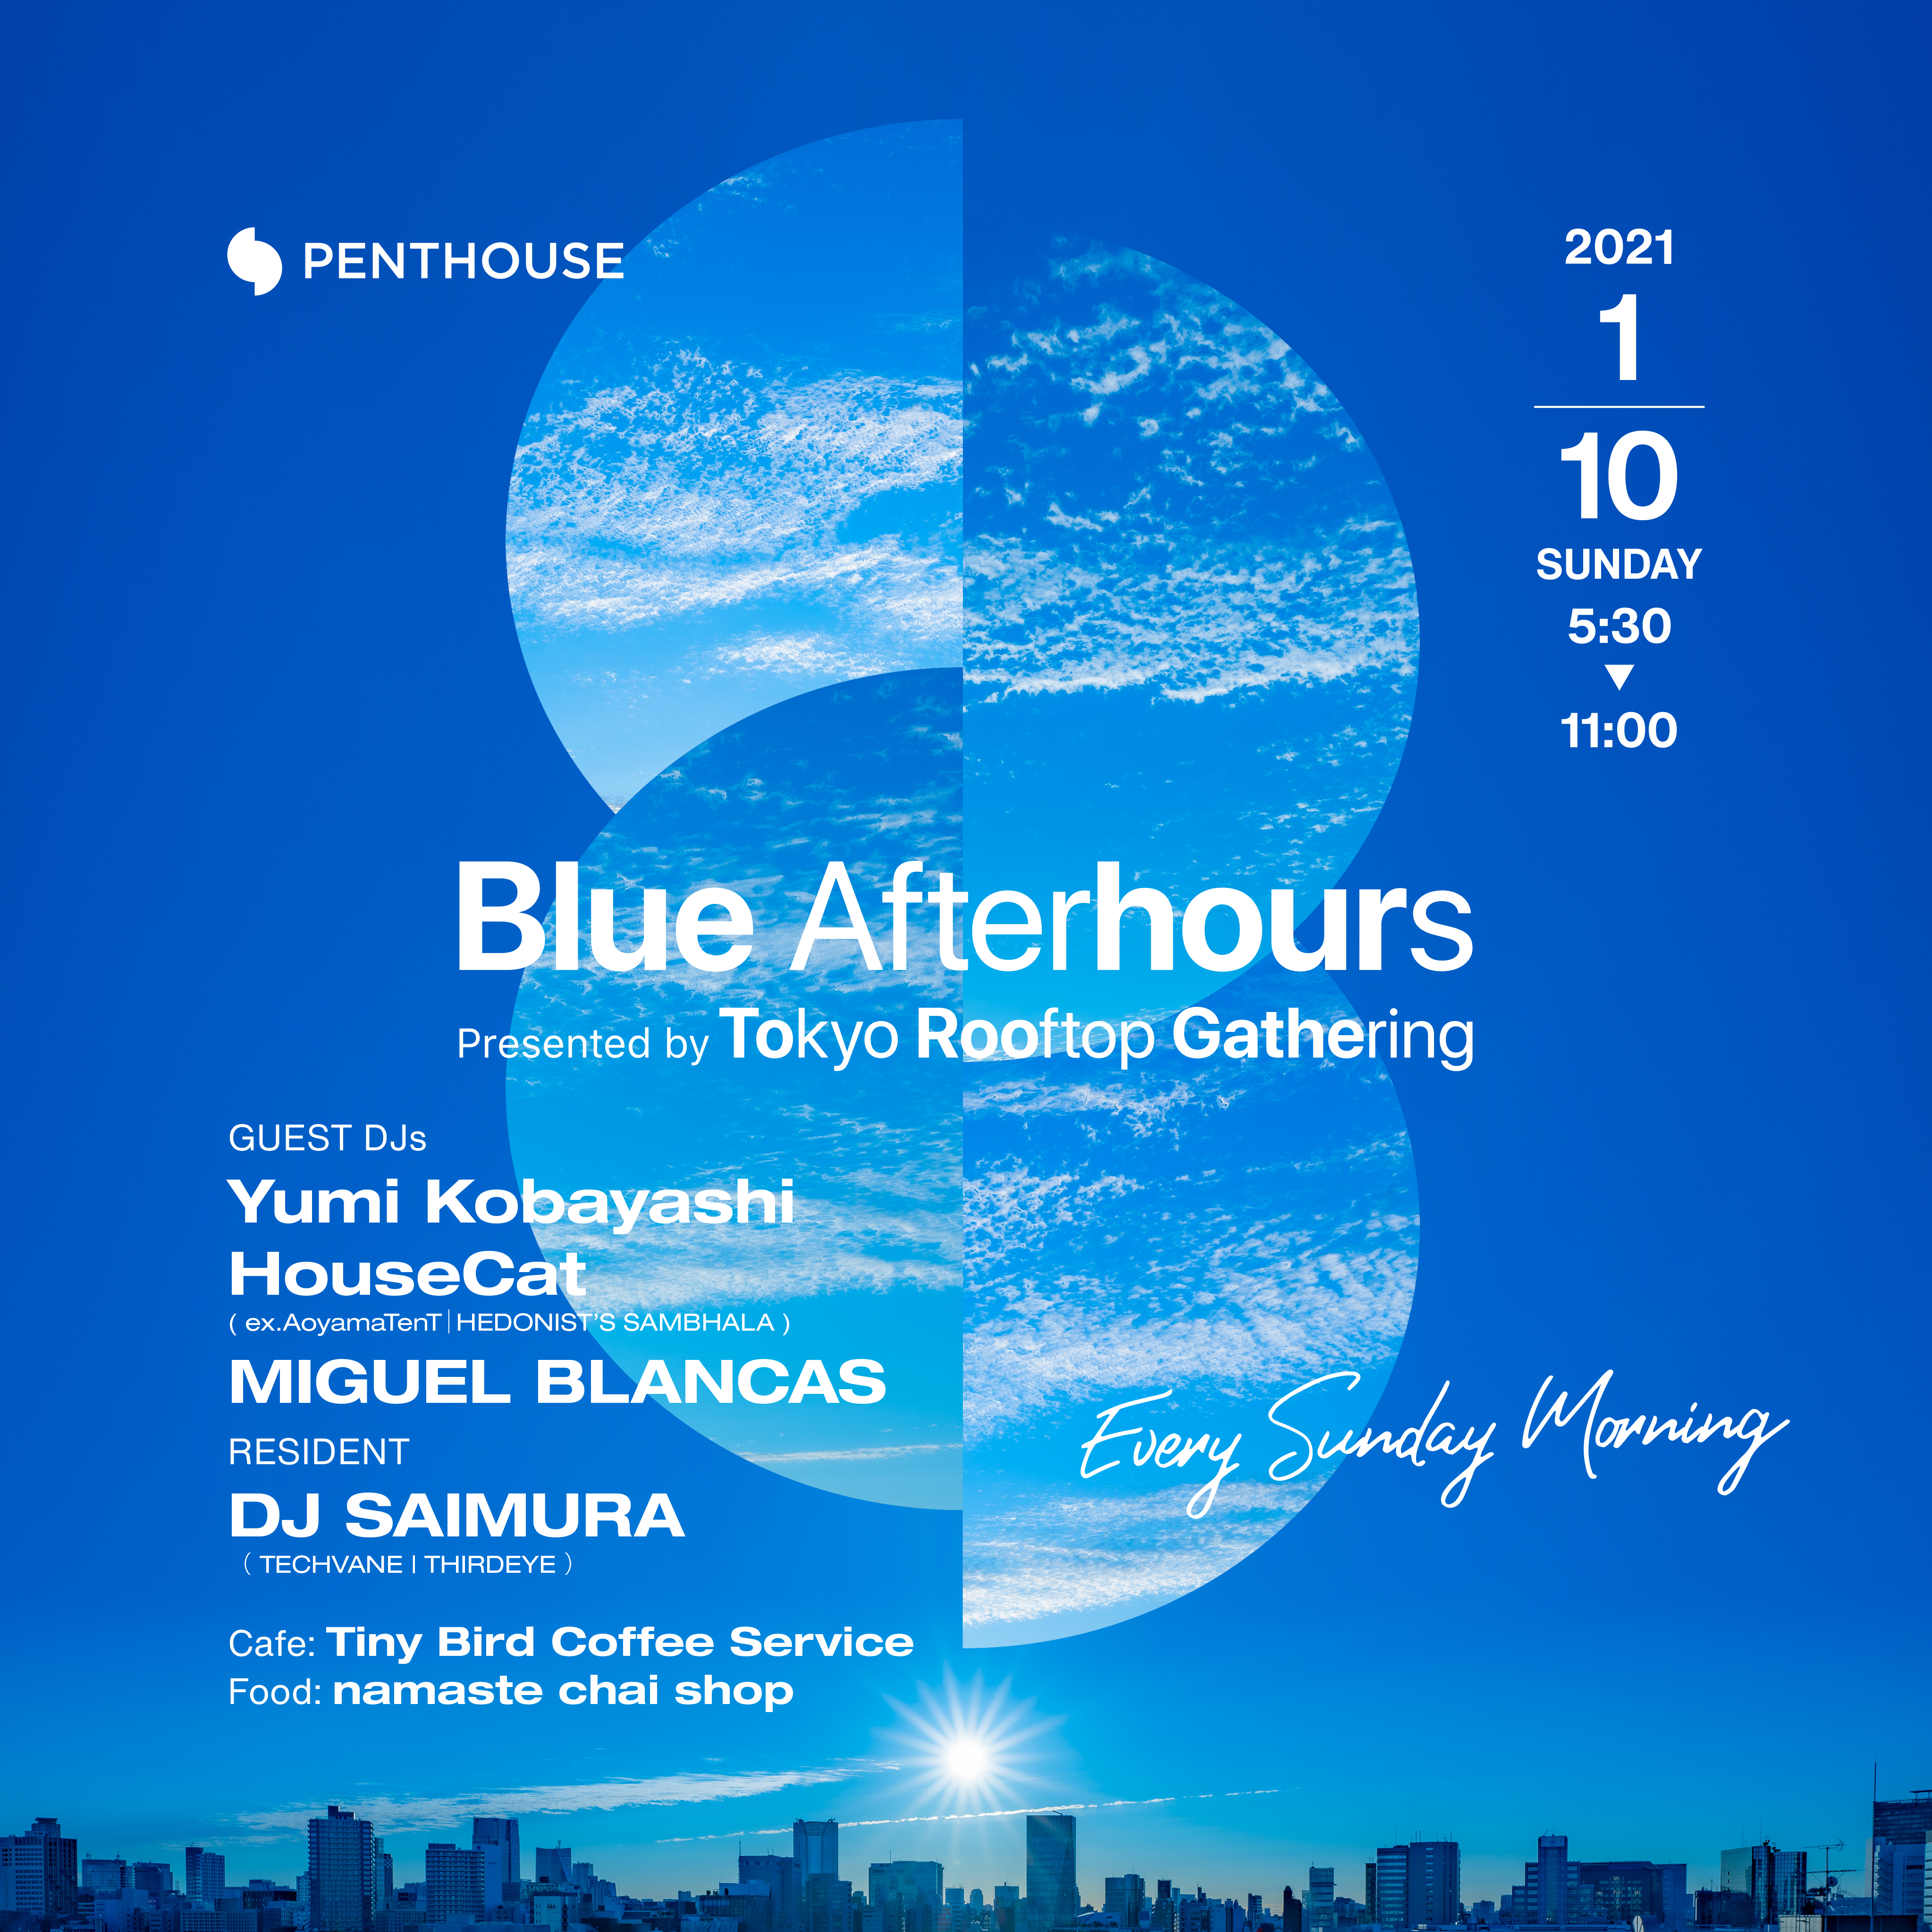 Blue Afterhours – Presented by Tokyo Rooftop Gathering